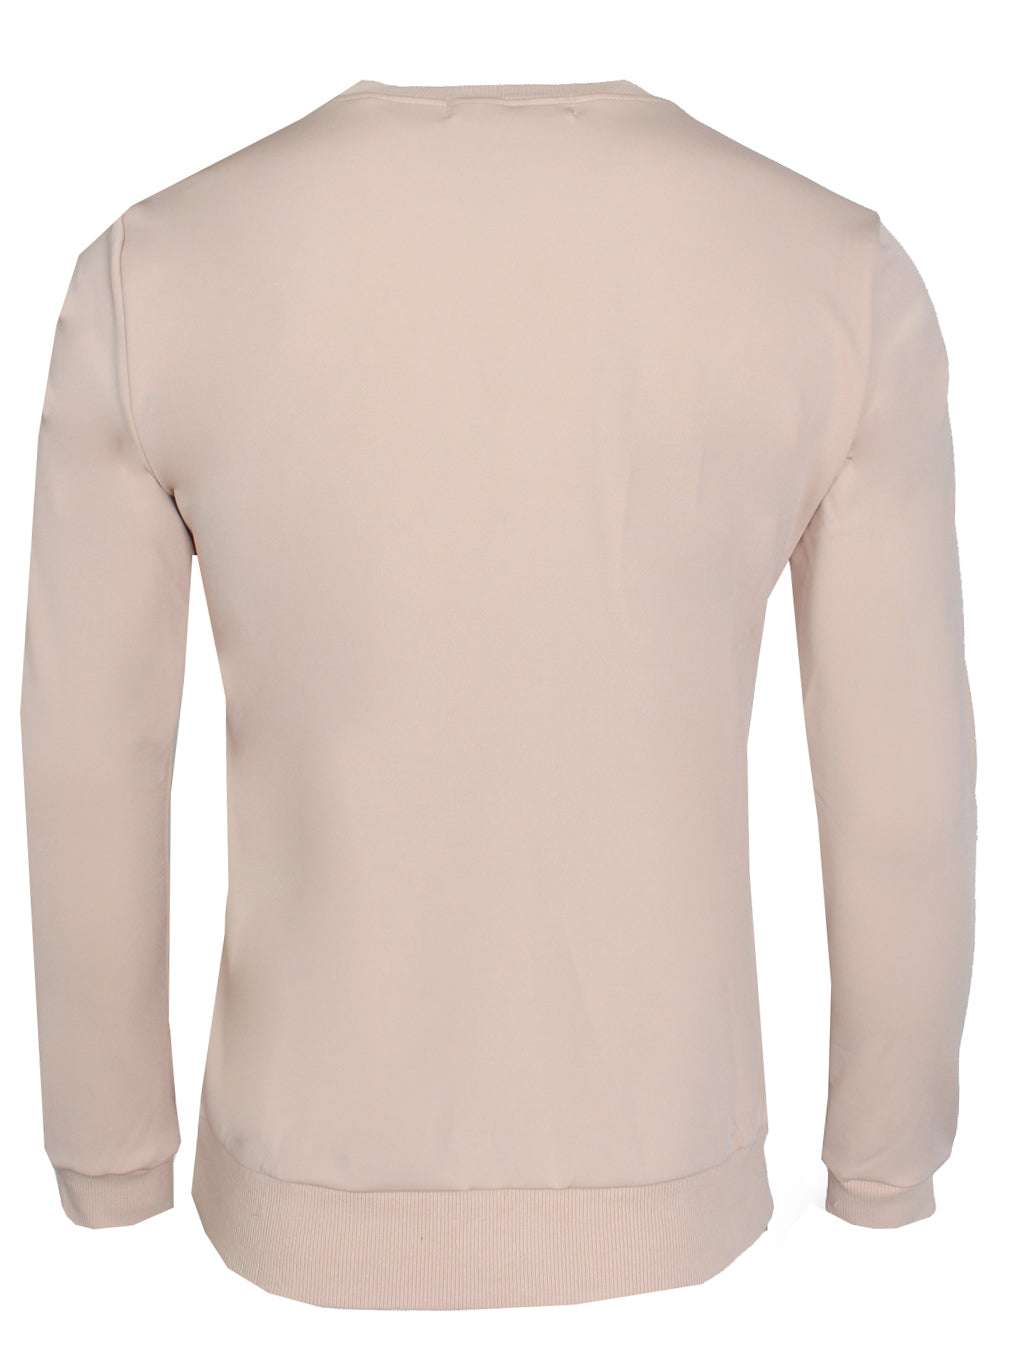 KASH Tan Crew Neck